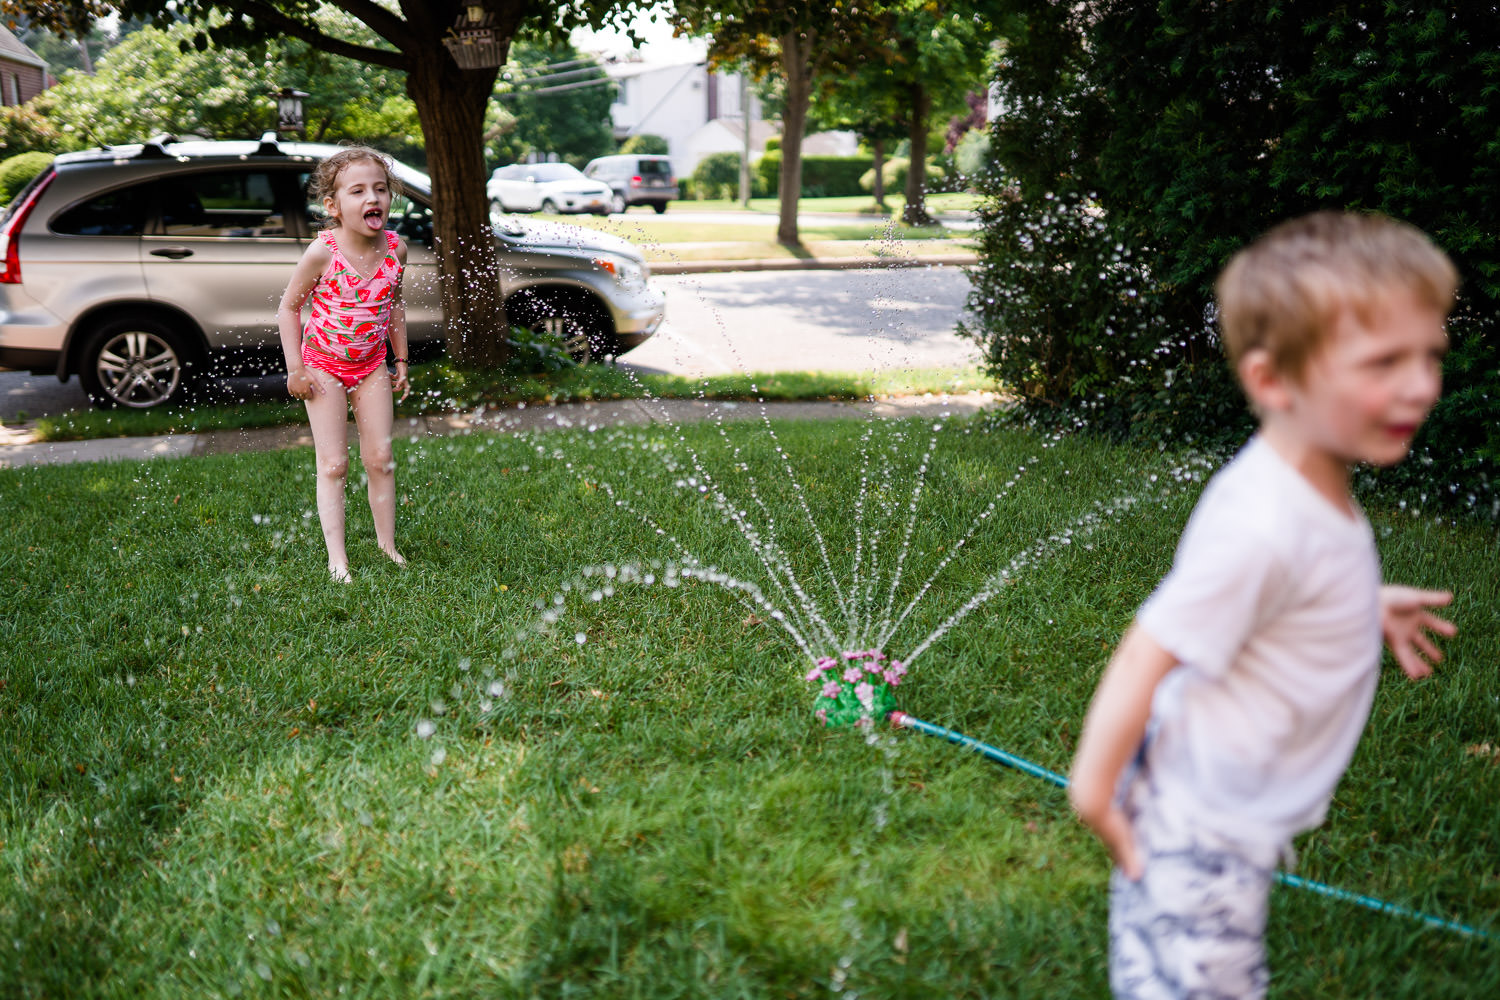 Children play in a sprinkler on the grass.